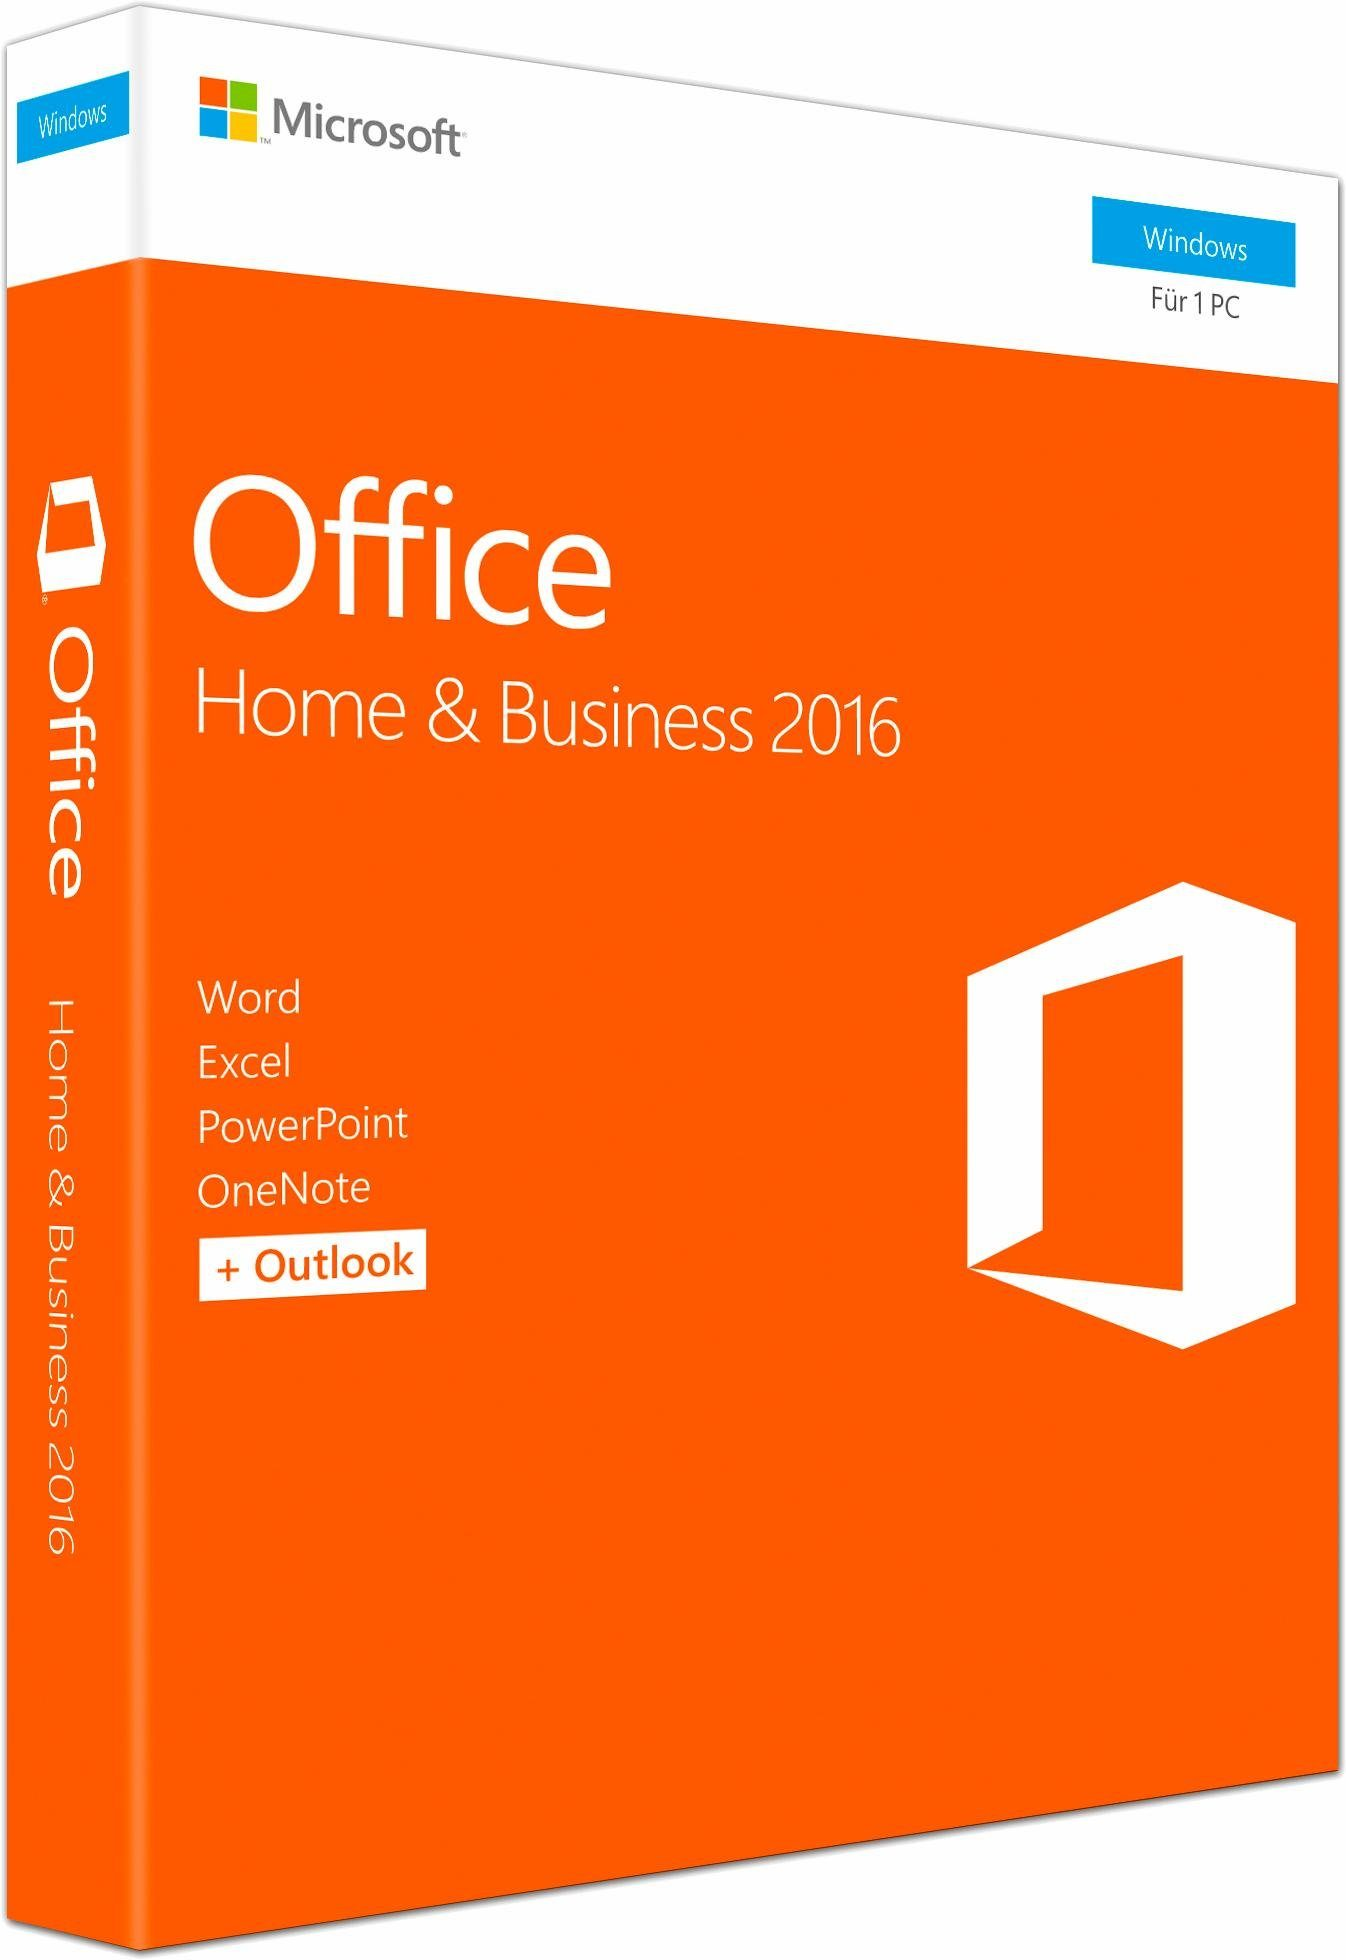 Microsoft® Office Home and Business 2016 Windows